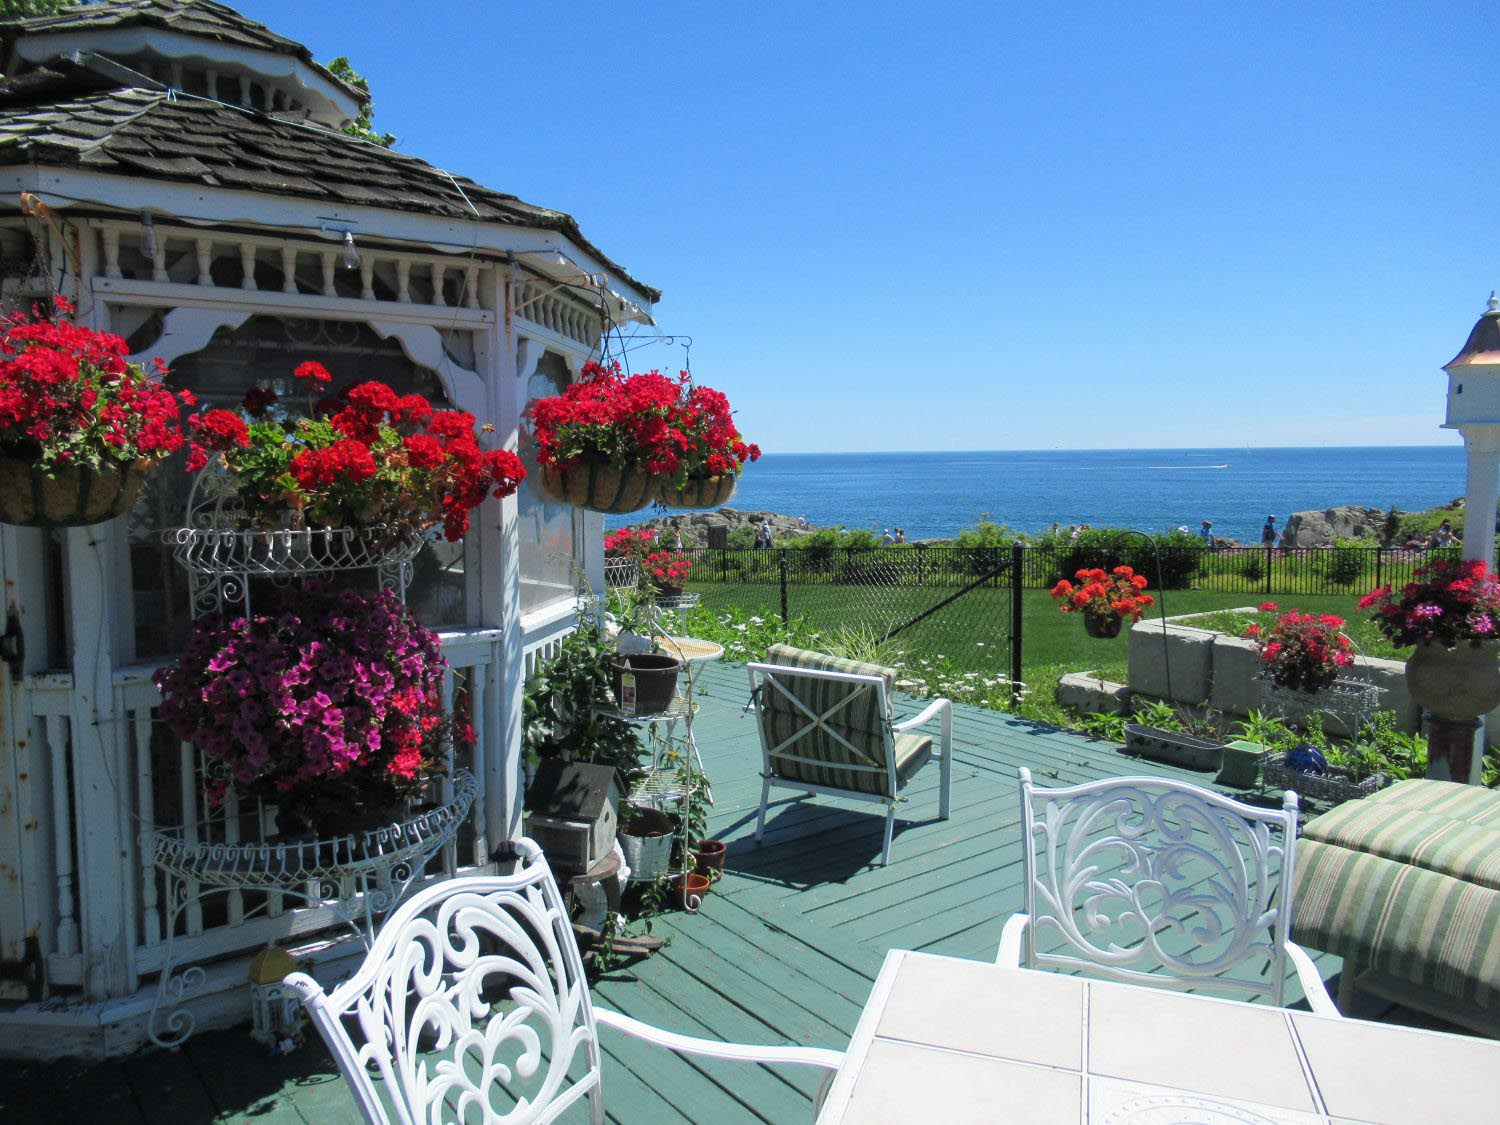 Oceanfront Bed & Breakfast in Ogunquit Maine